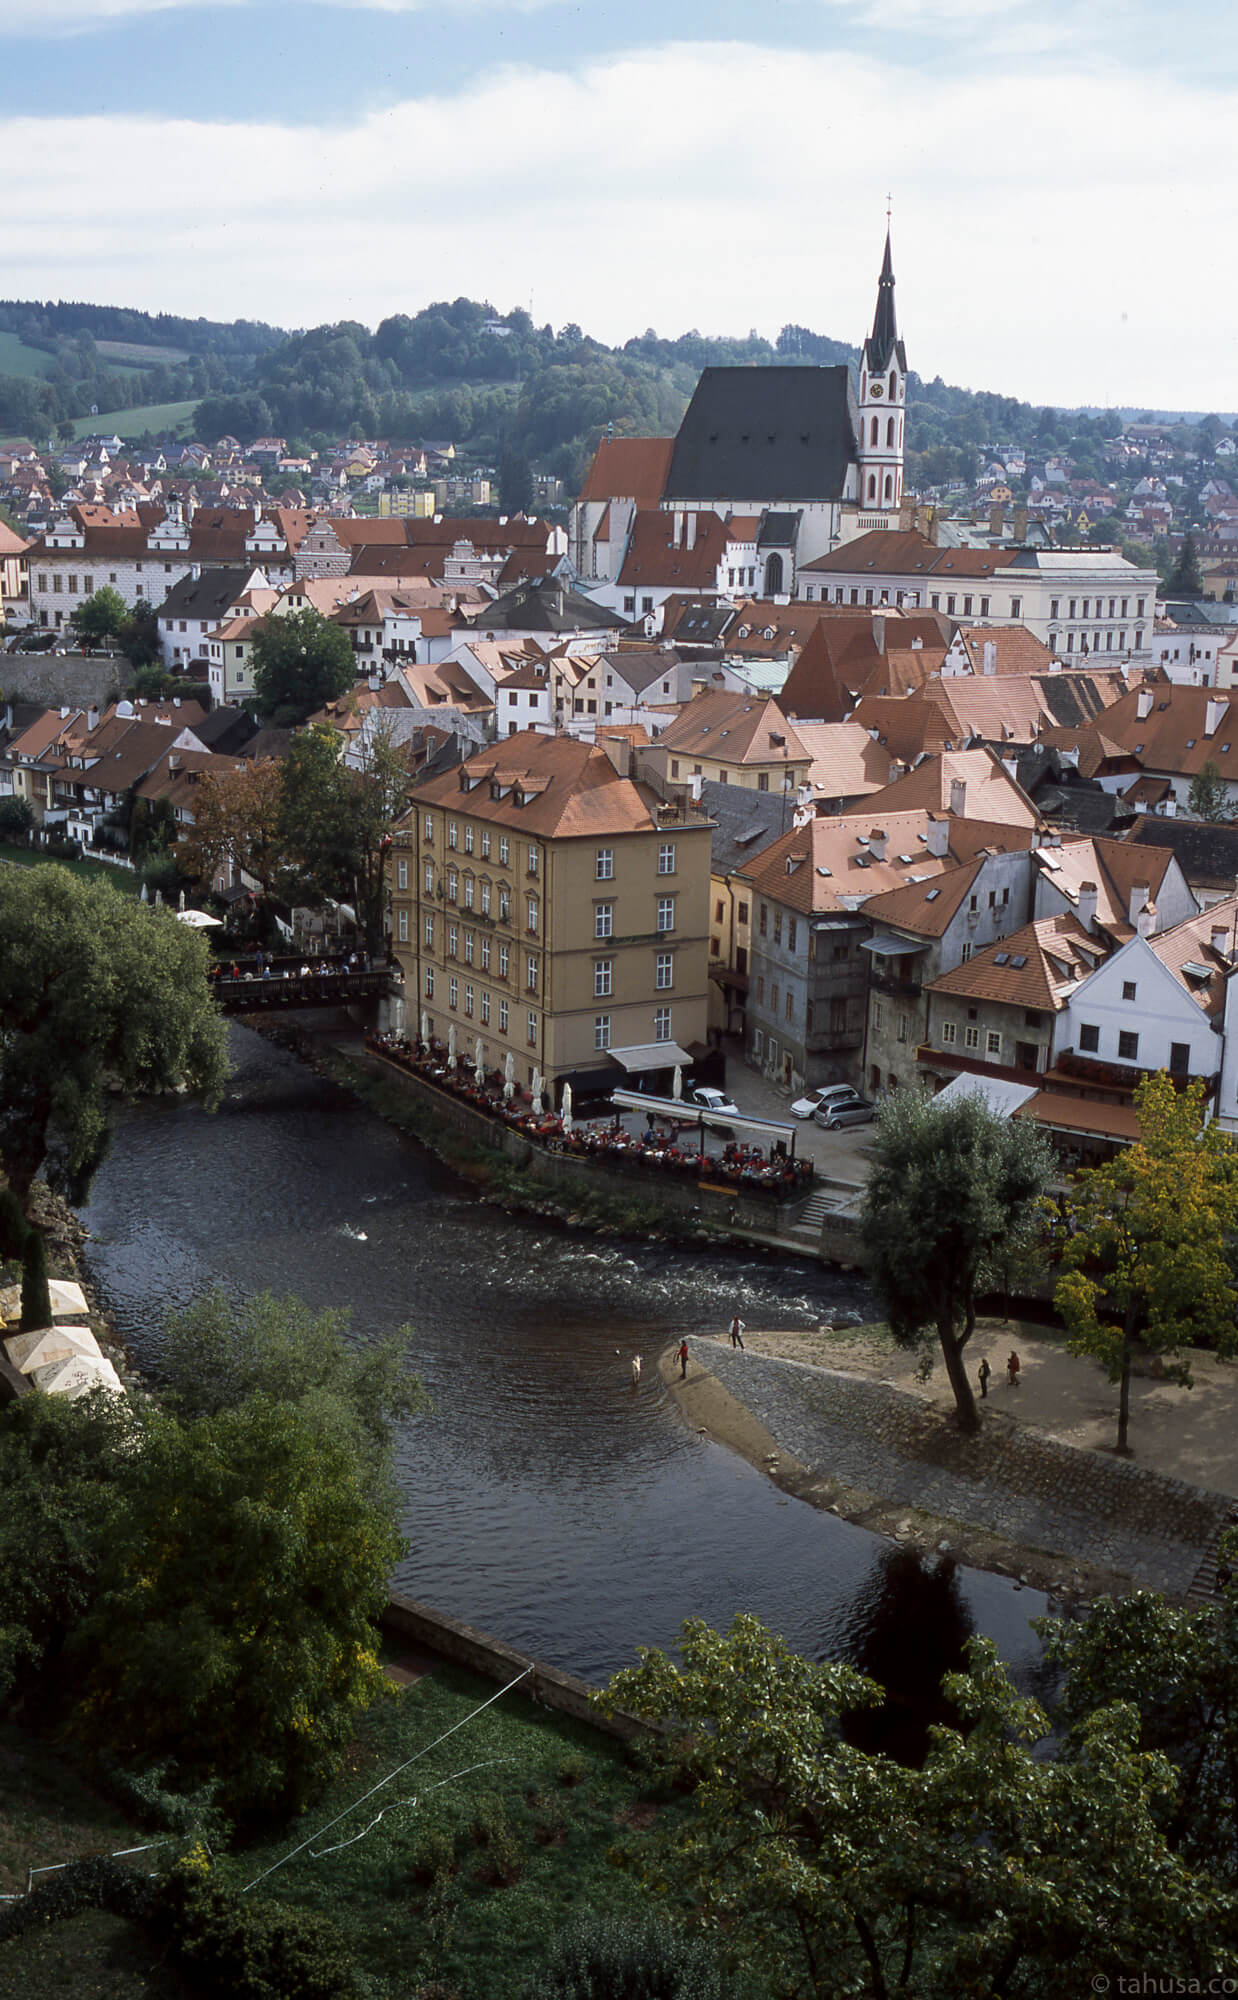 Cesky-Krumlov-Czech-Republic-most-beautiful-small-town-Scenic-view-positive-film-analog-E6-provia-RDPIII-RDP-fuji-fujifilm-Summicron-35mm-f1-v1-canada-8elements-8ele-street-snap-streetphotography-photowalk